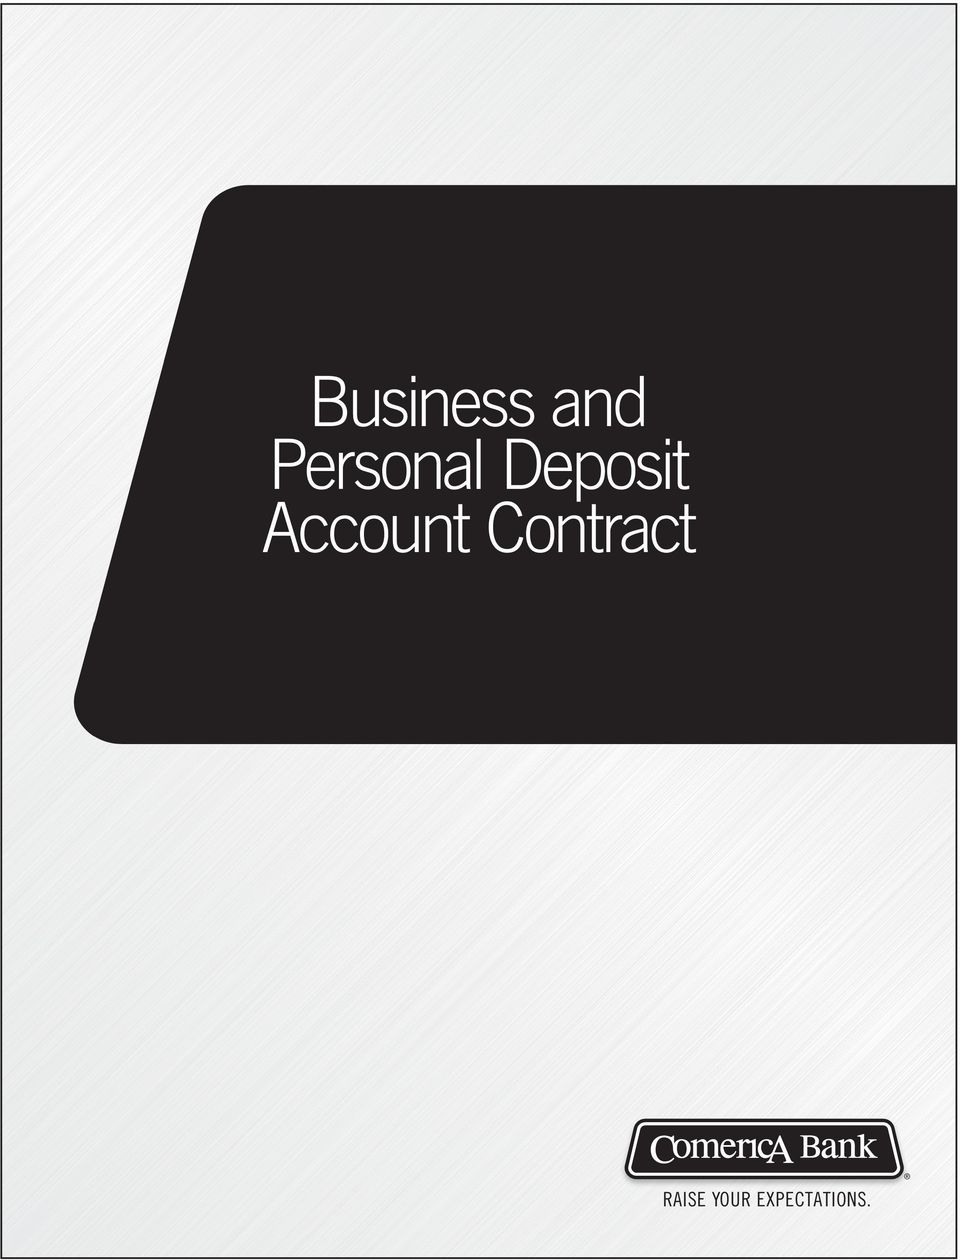 Account Contract